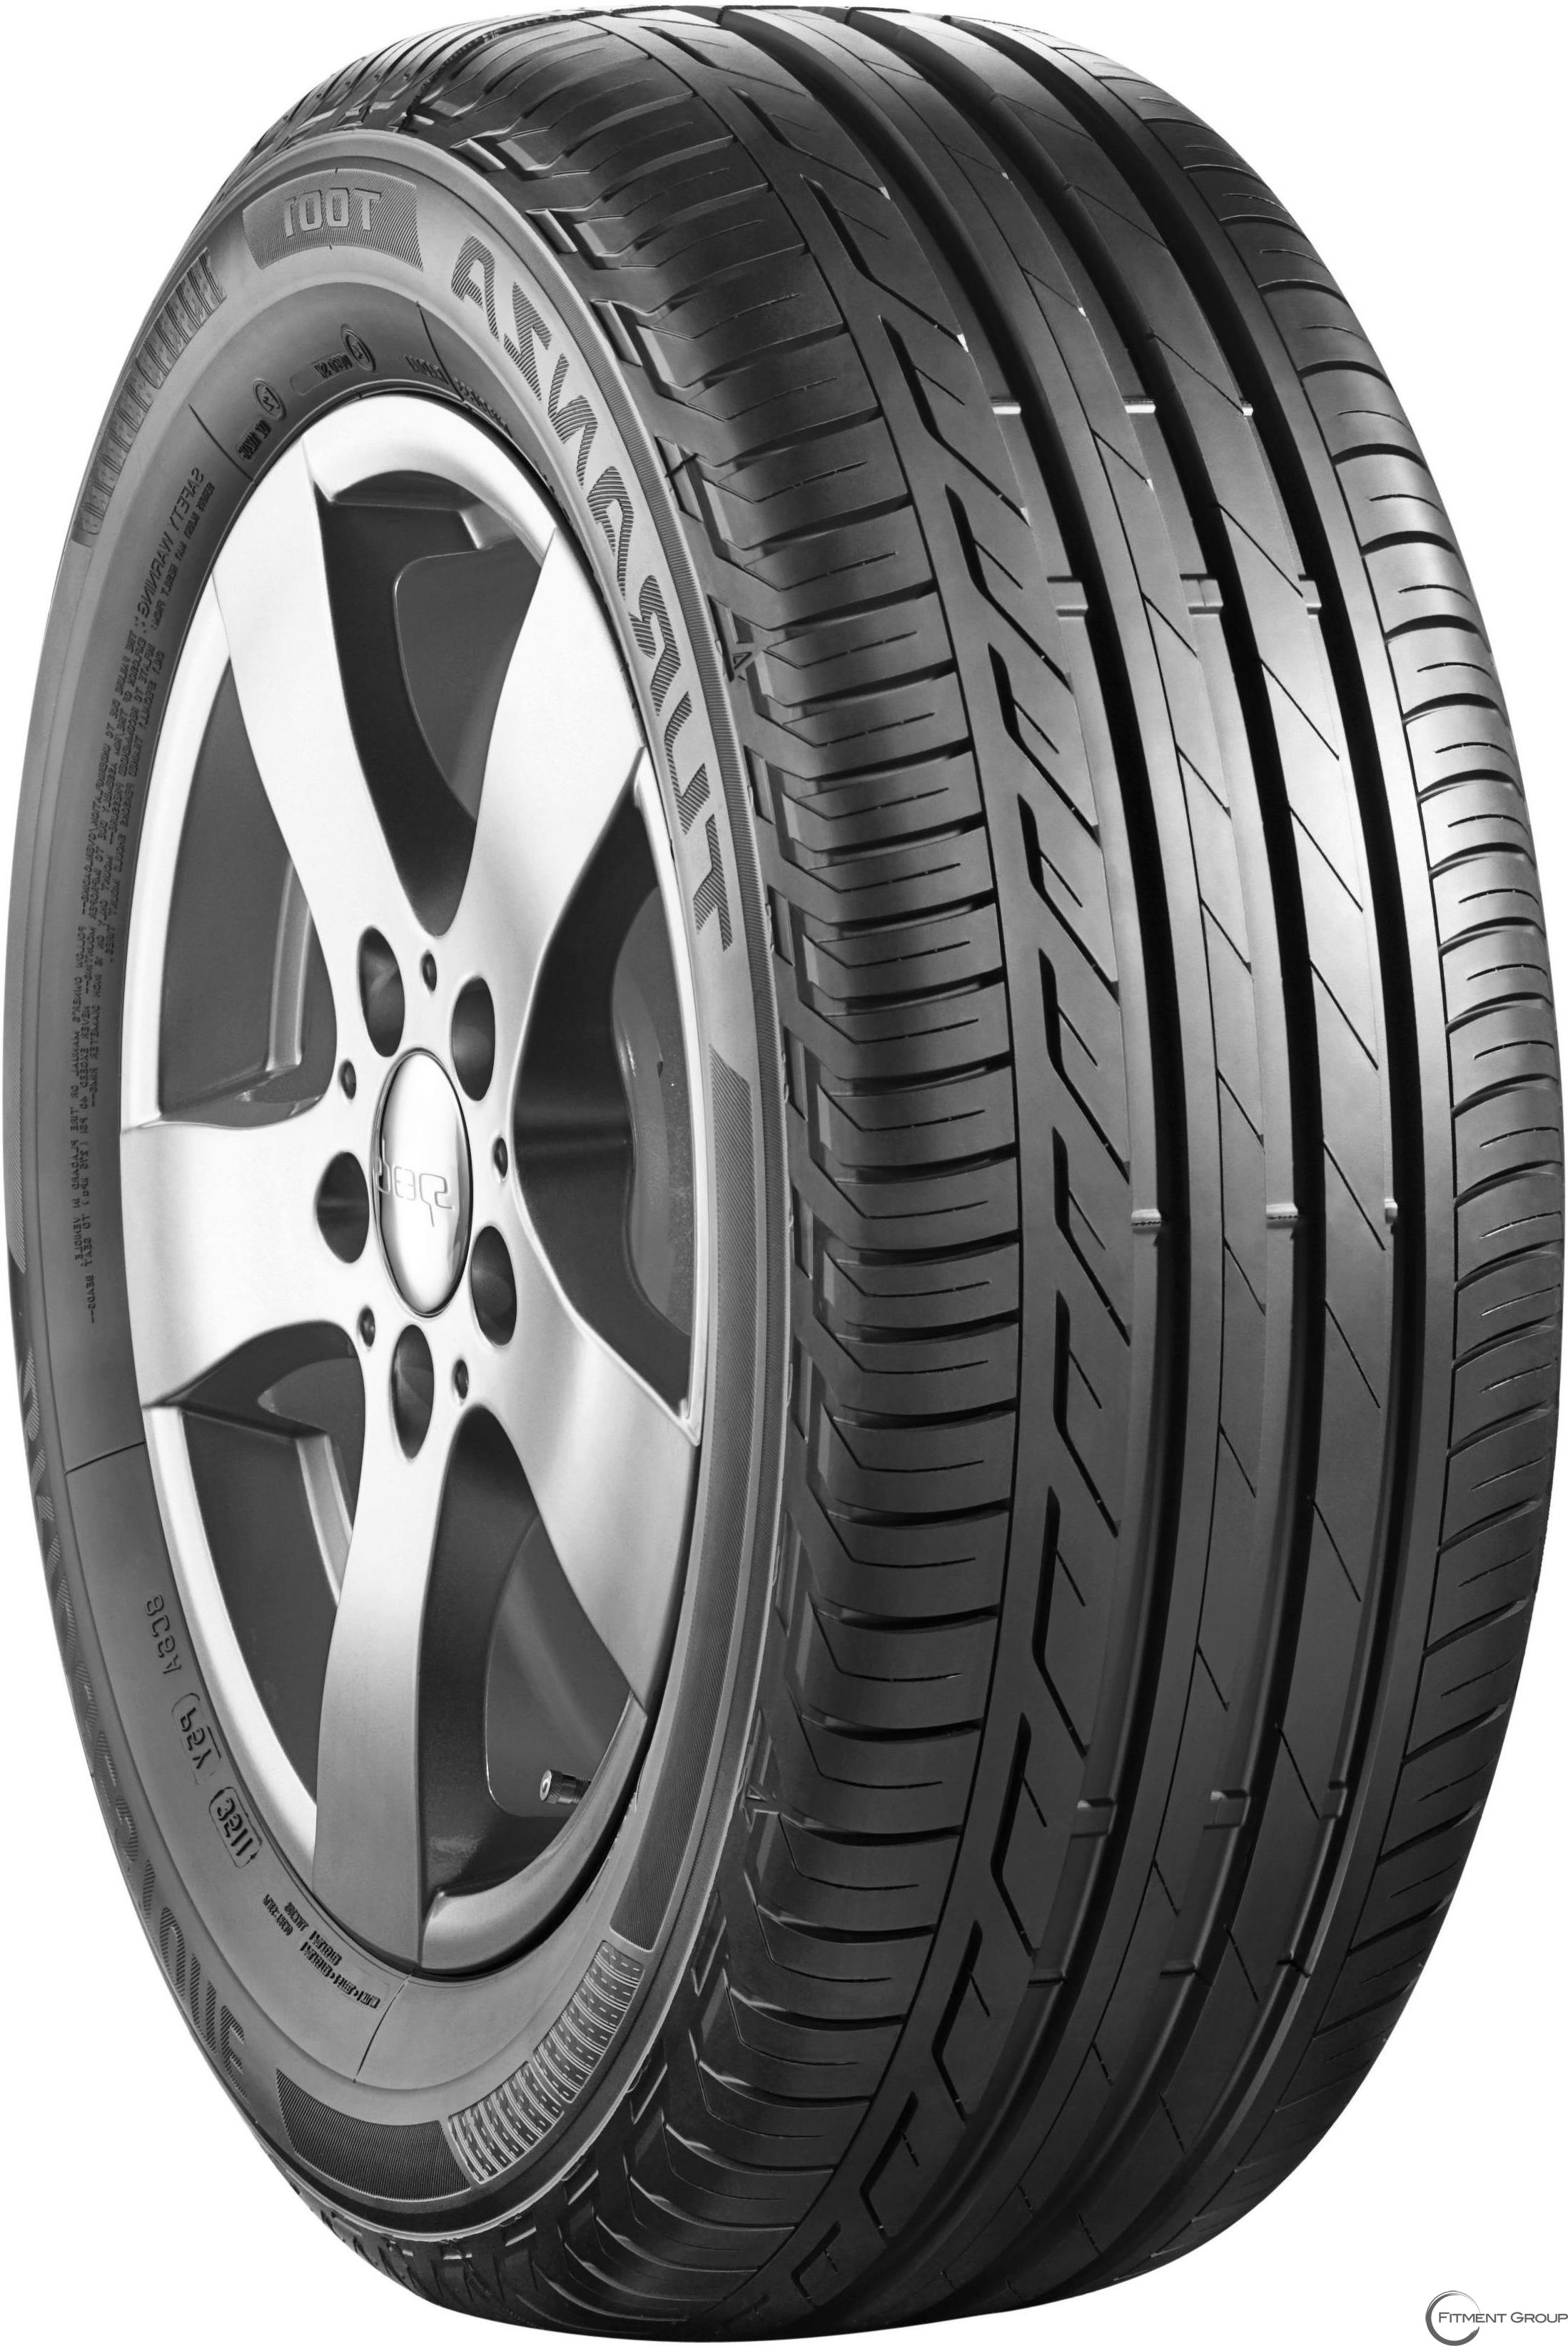 bridgestone big brand tire service has a large selection of tires at affordable prices. Black Bedroom Furniture Sets. Home Design Ideas